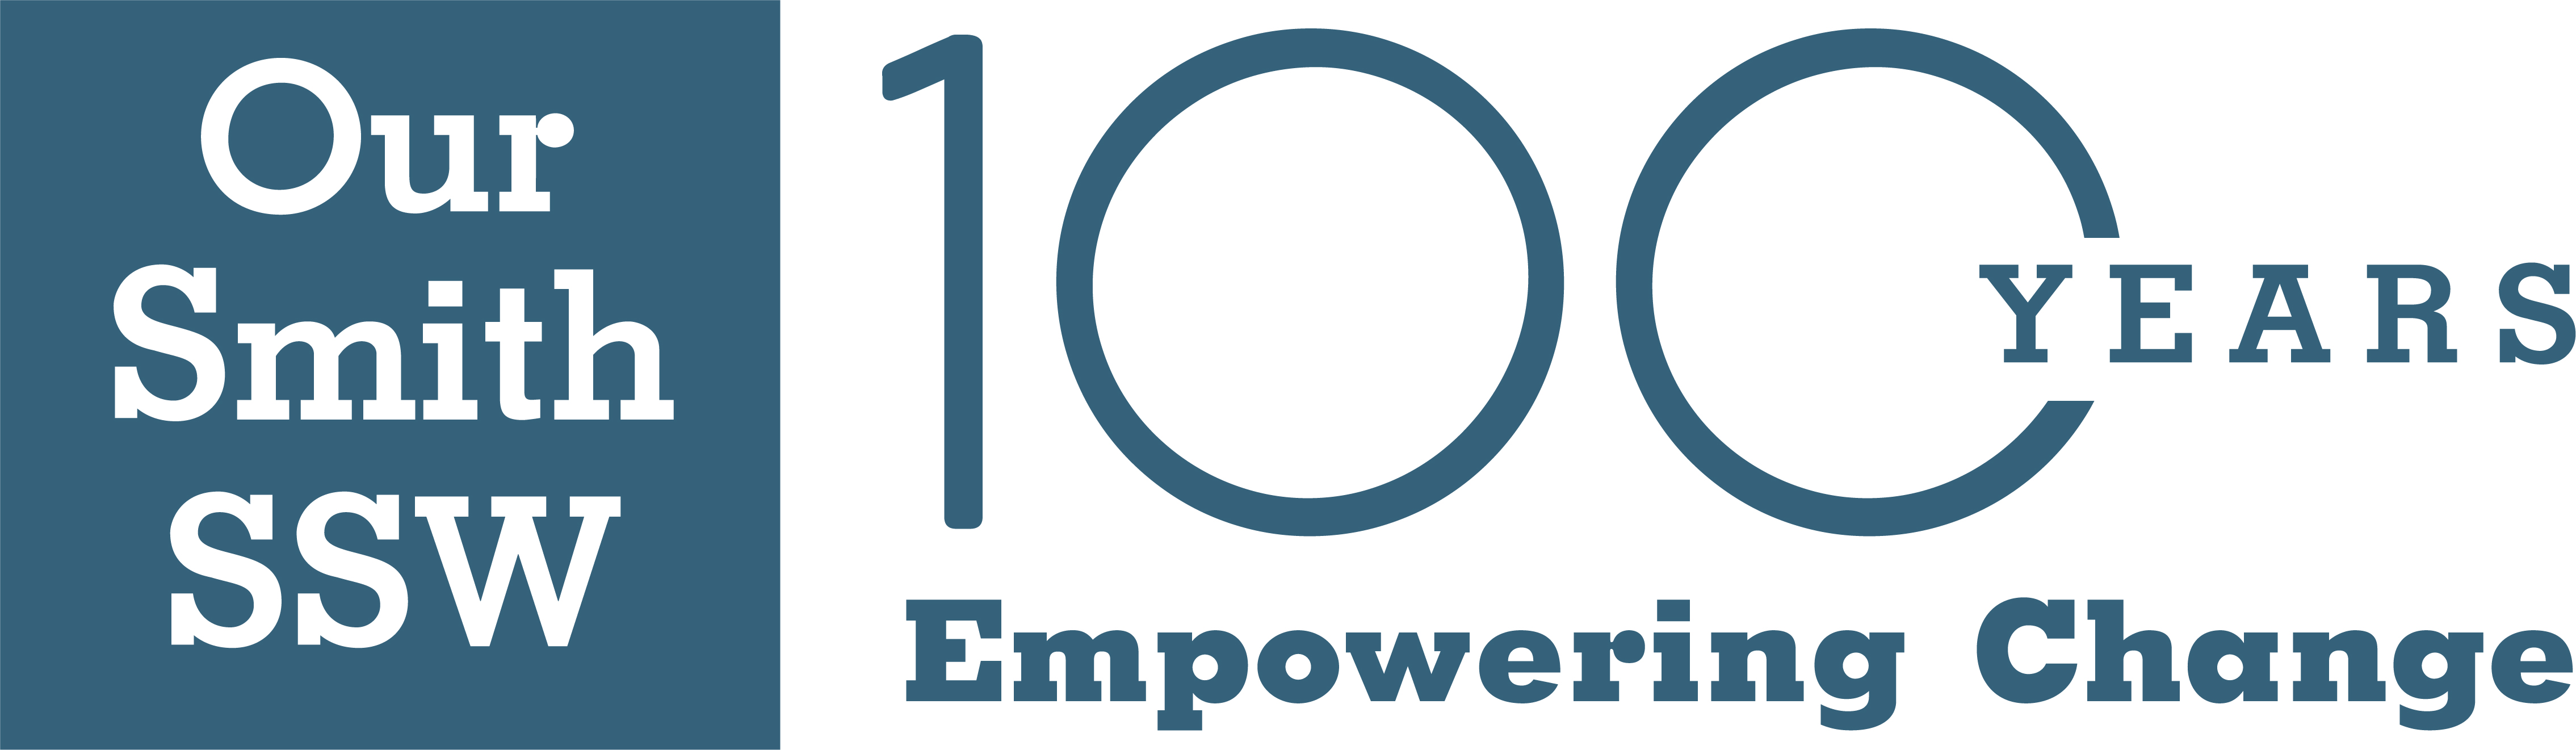 Our Smith SSW 100 Years of Empowering Change